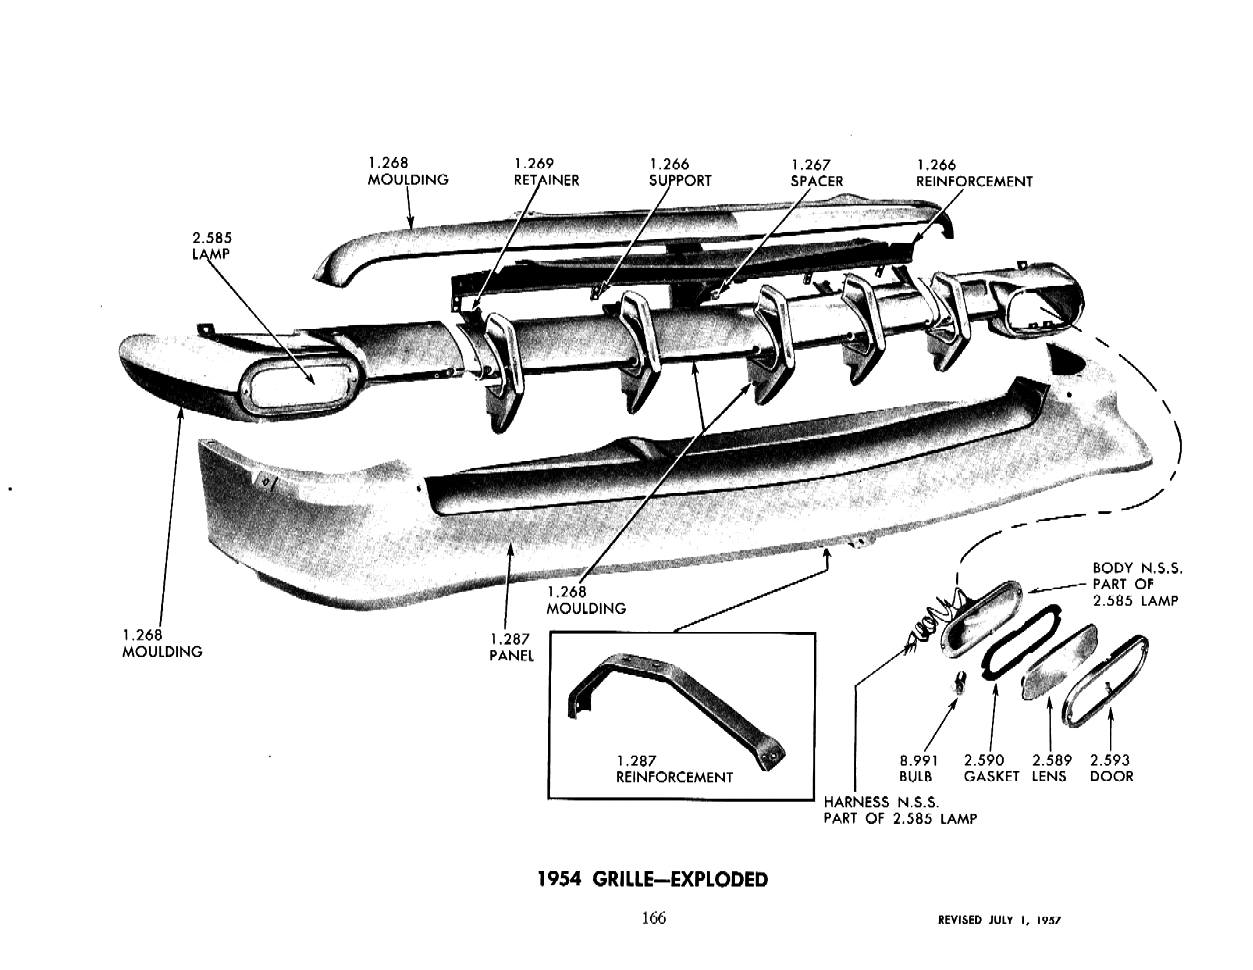 57 Cadillac Engine Diagram. Cadillac. Auto Wiring Diagram